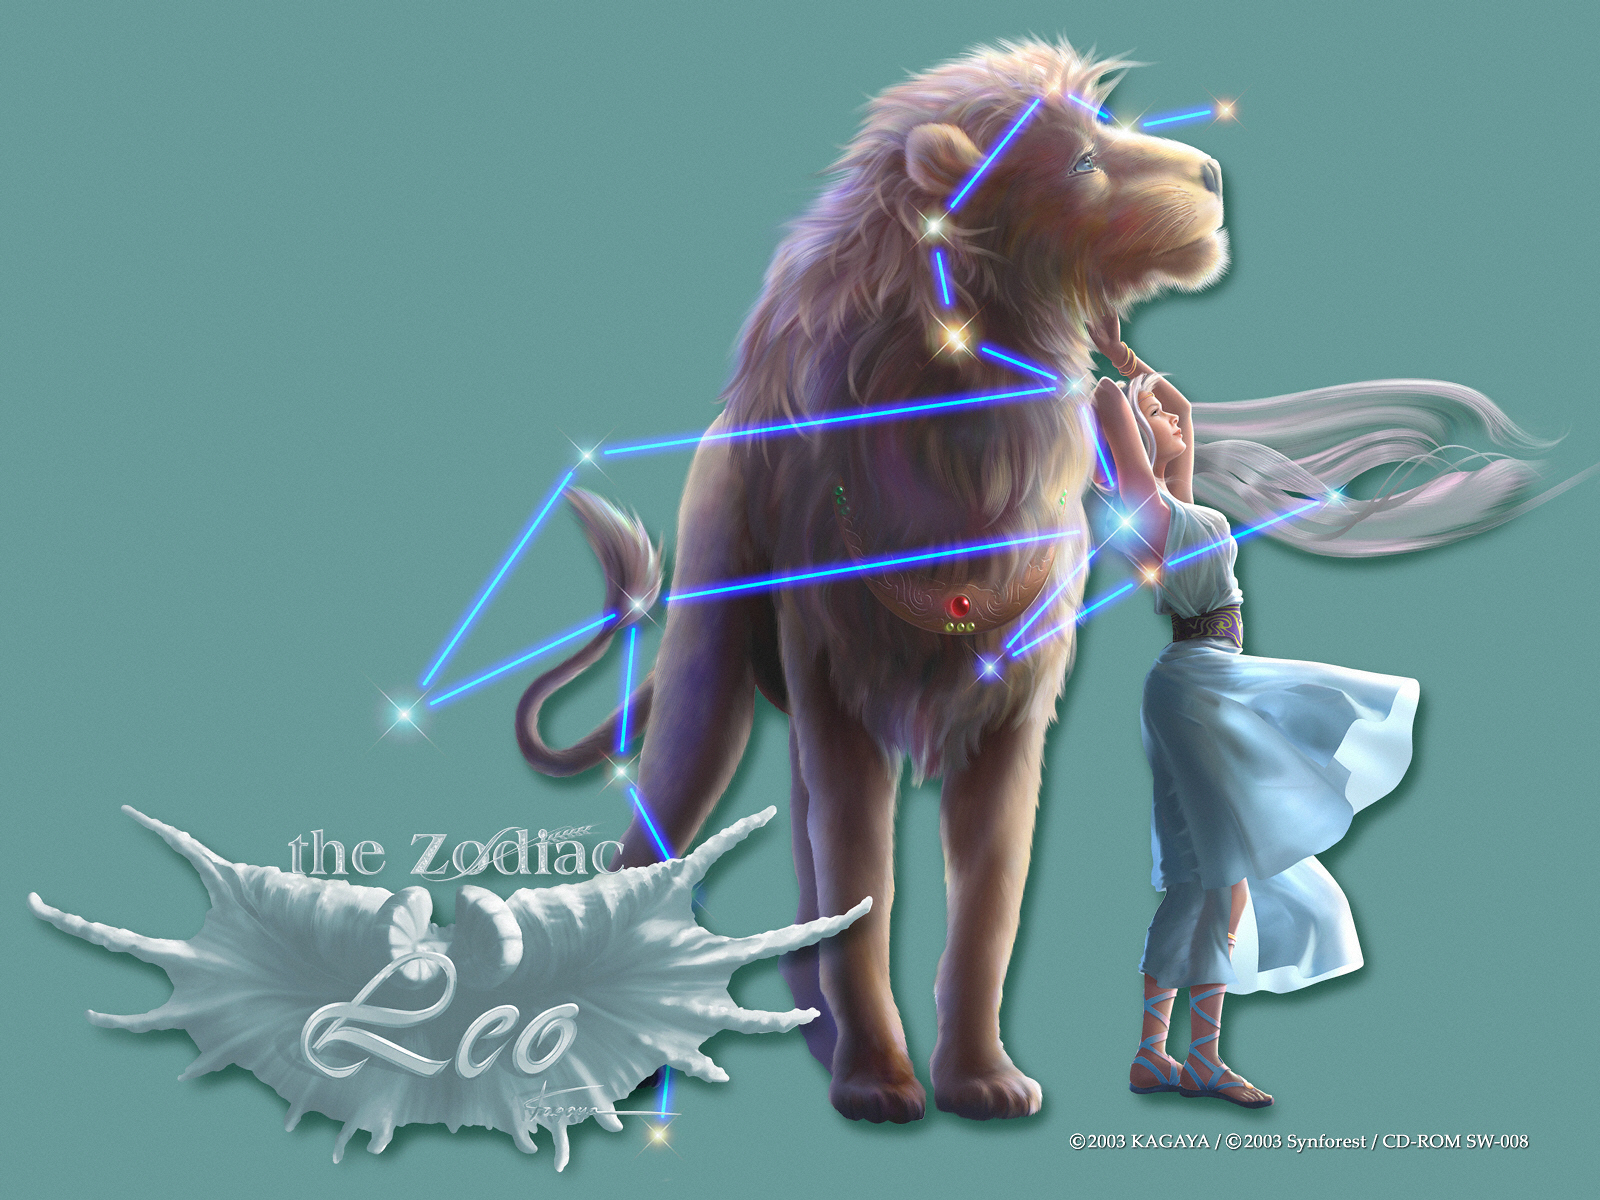 Zodiac Images Leo Hd Wallpaper And Background Photos 22235008